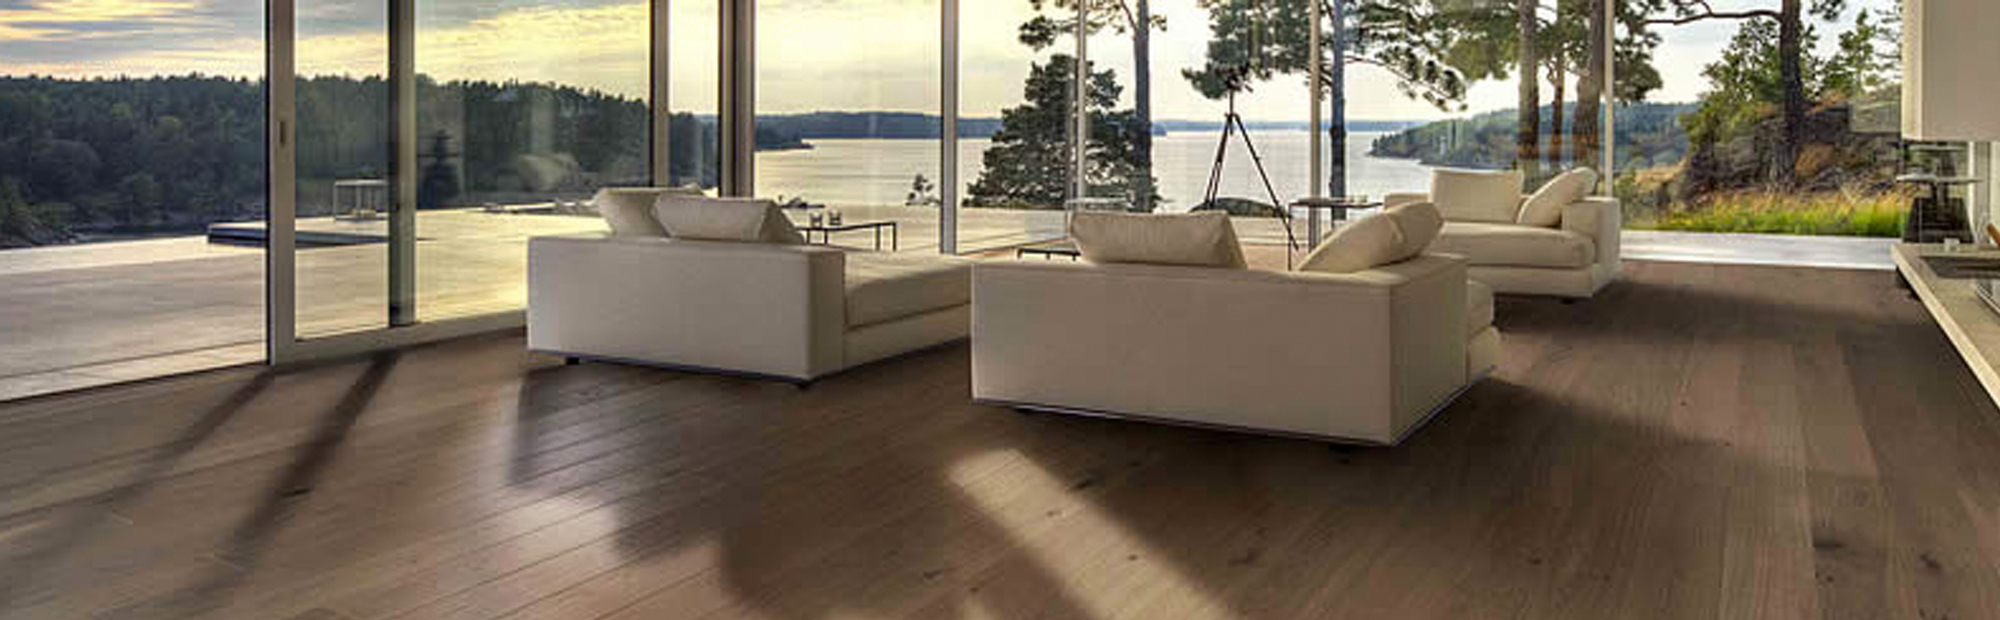 Browse our types of wood flooring to find the ideal colour and style for the floor in your room.